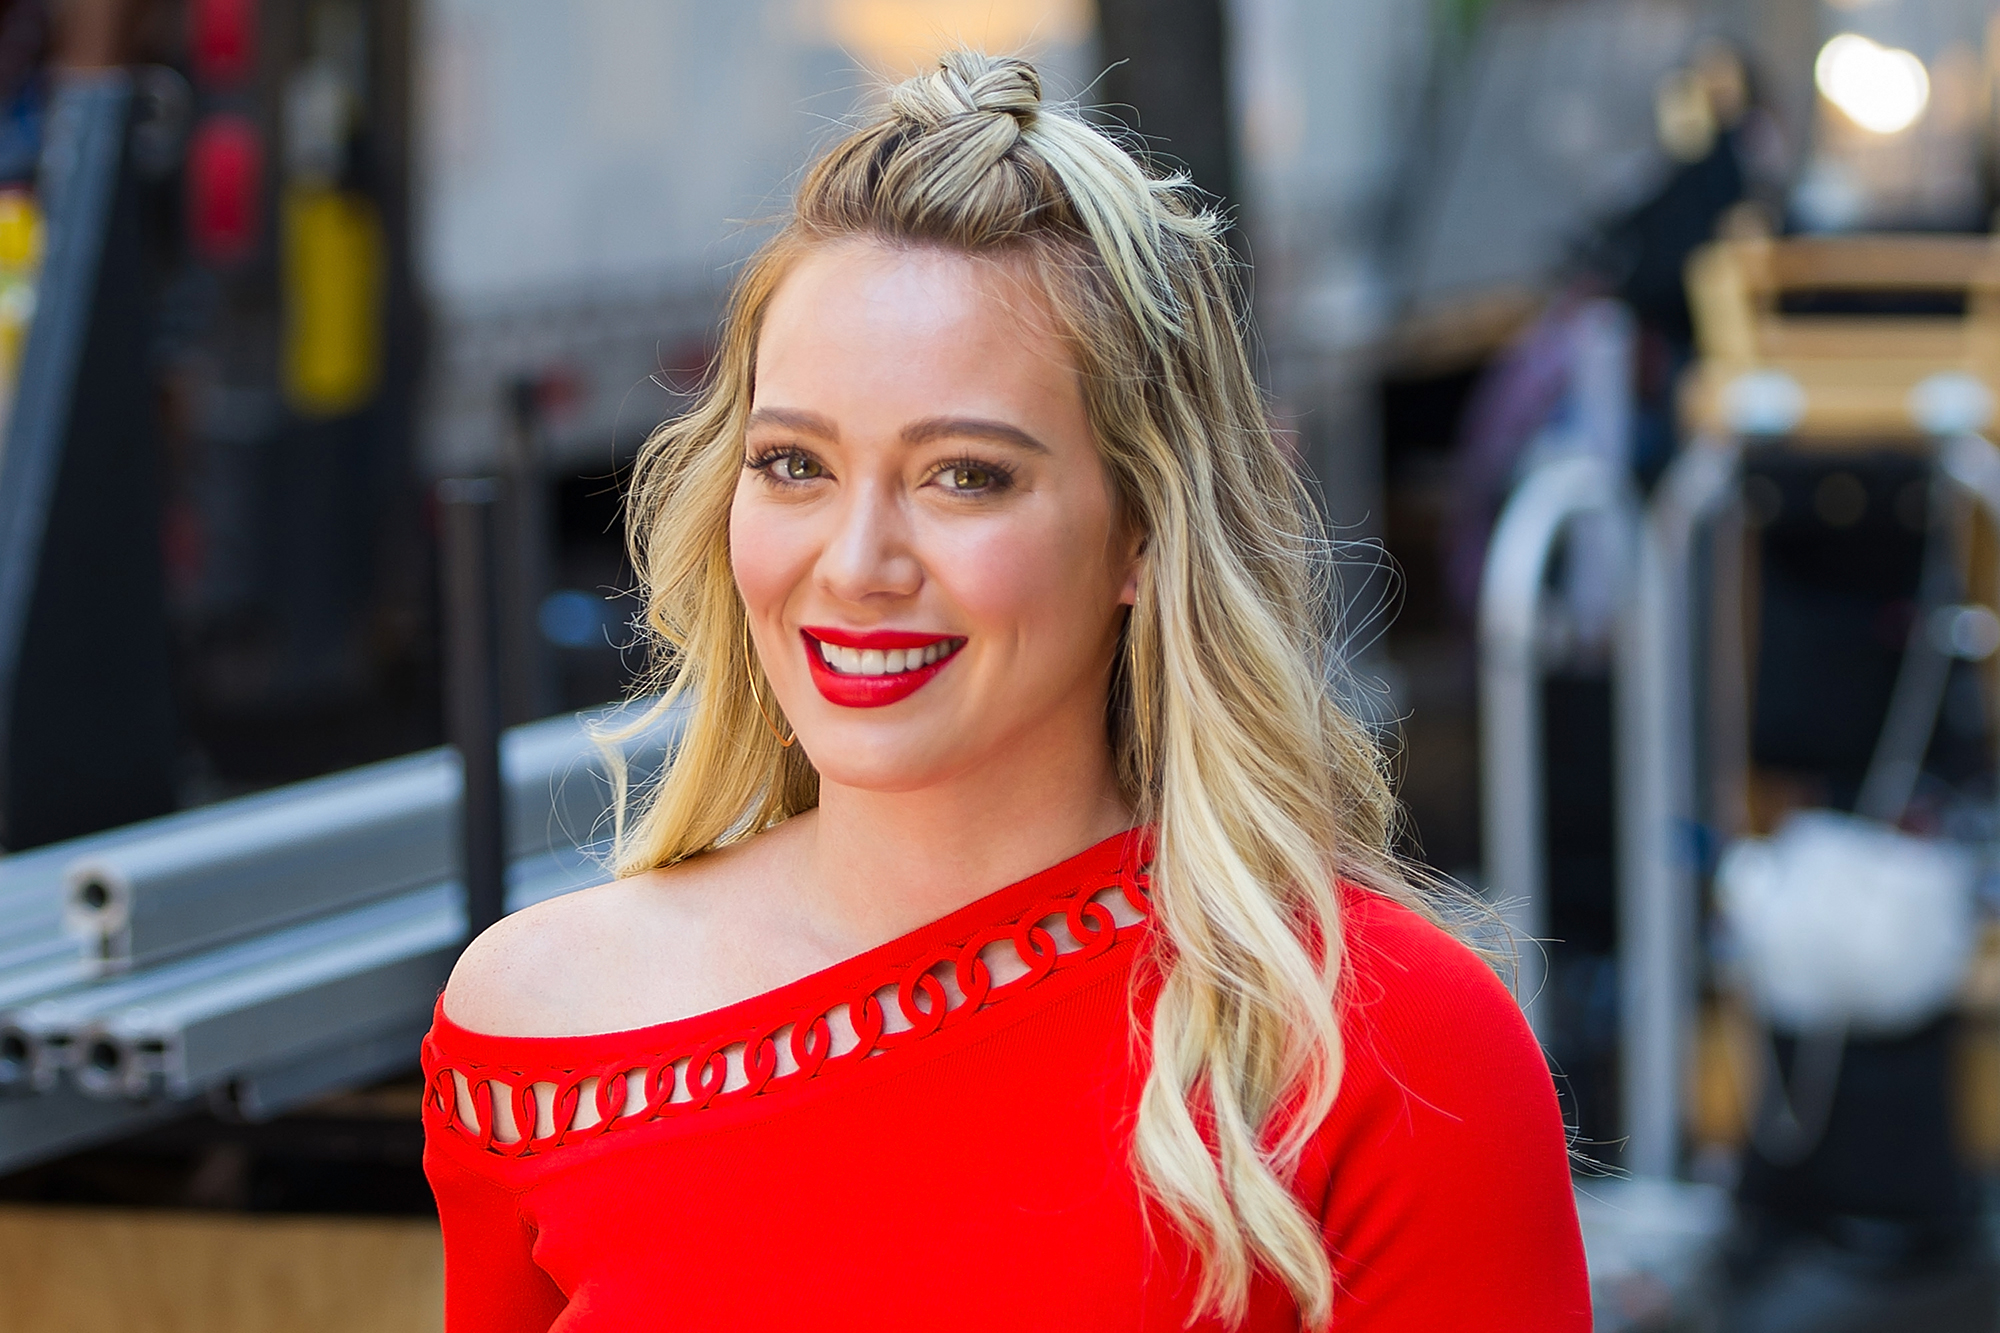 hilary duff dating timeline